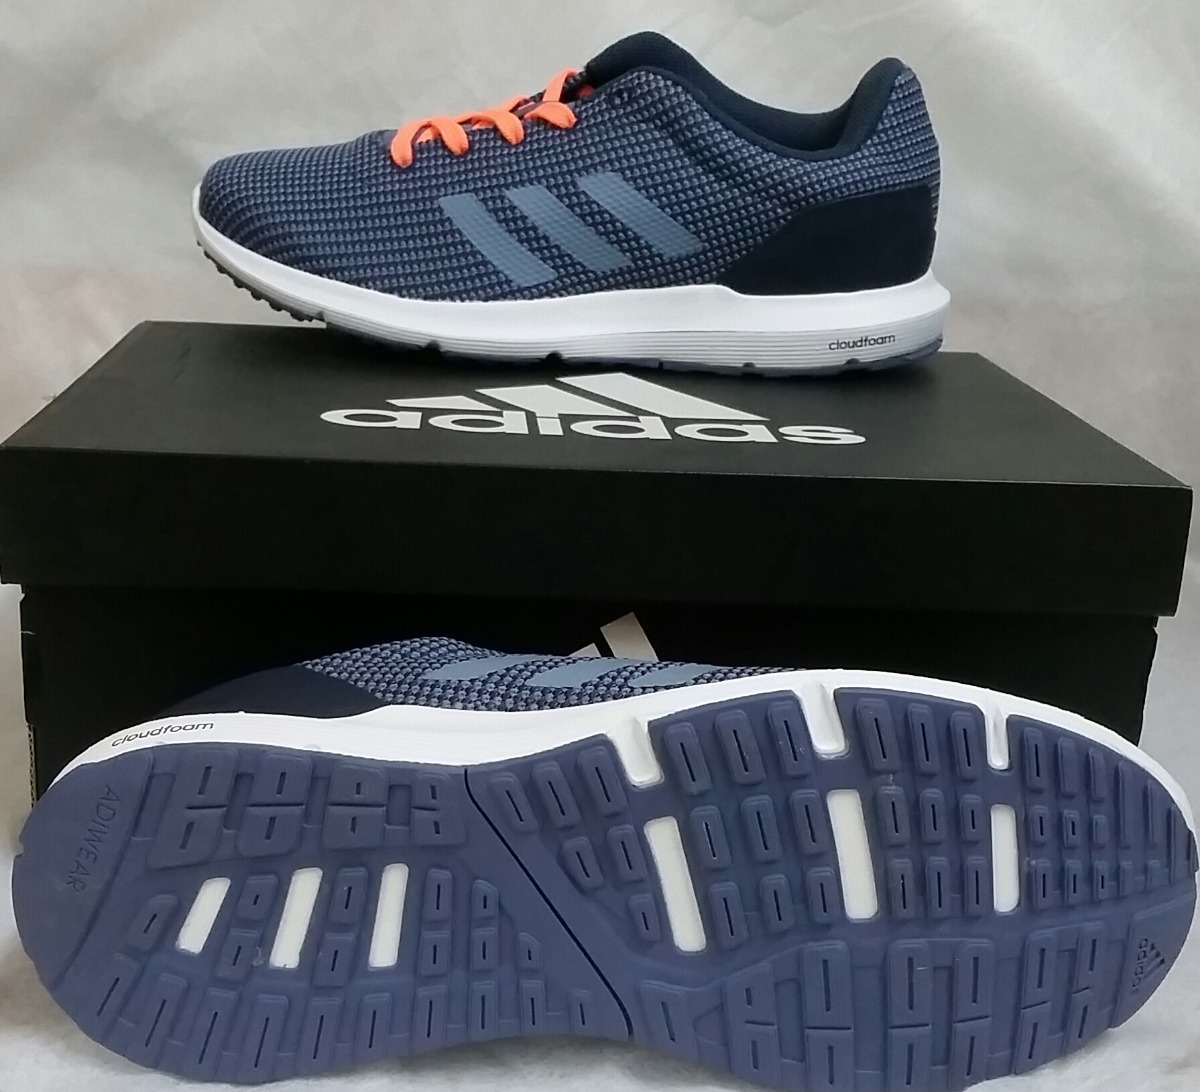 hot sale online 753fd c1cc7 zapatilla mujer adidas running cosmic w, us 7,5 cl 39,5. Cargando zoom.